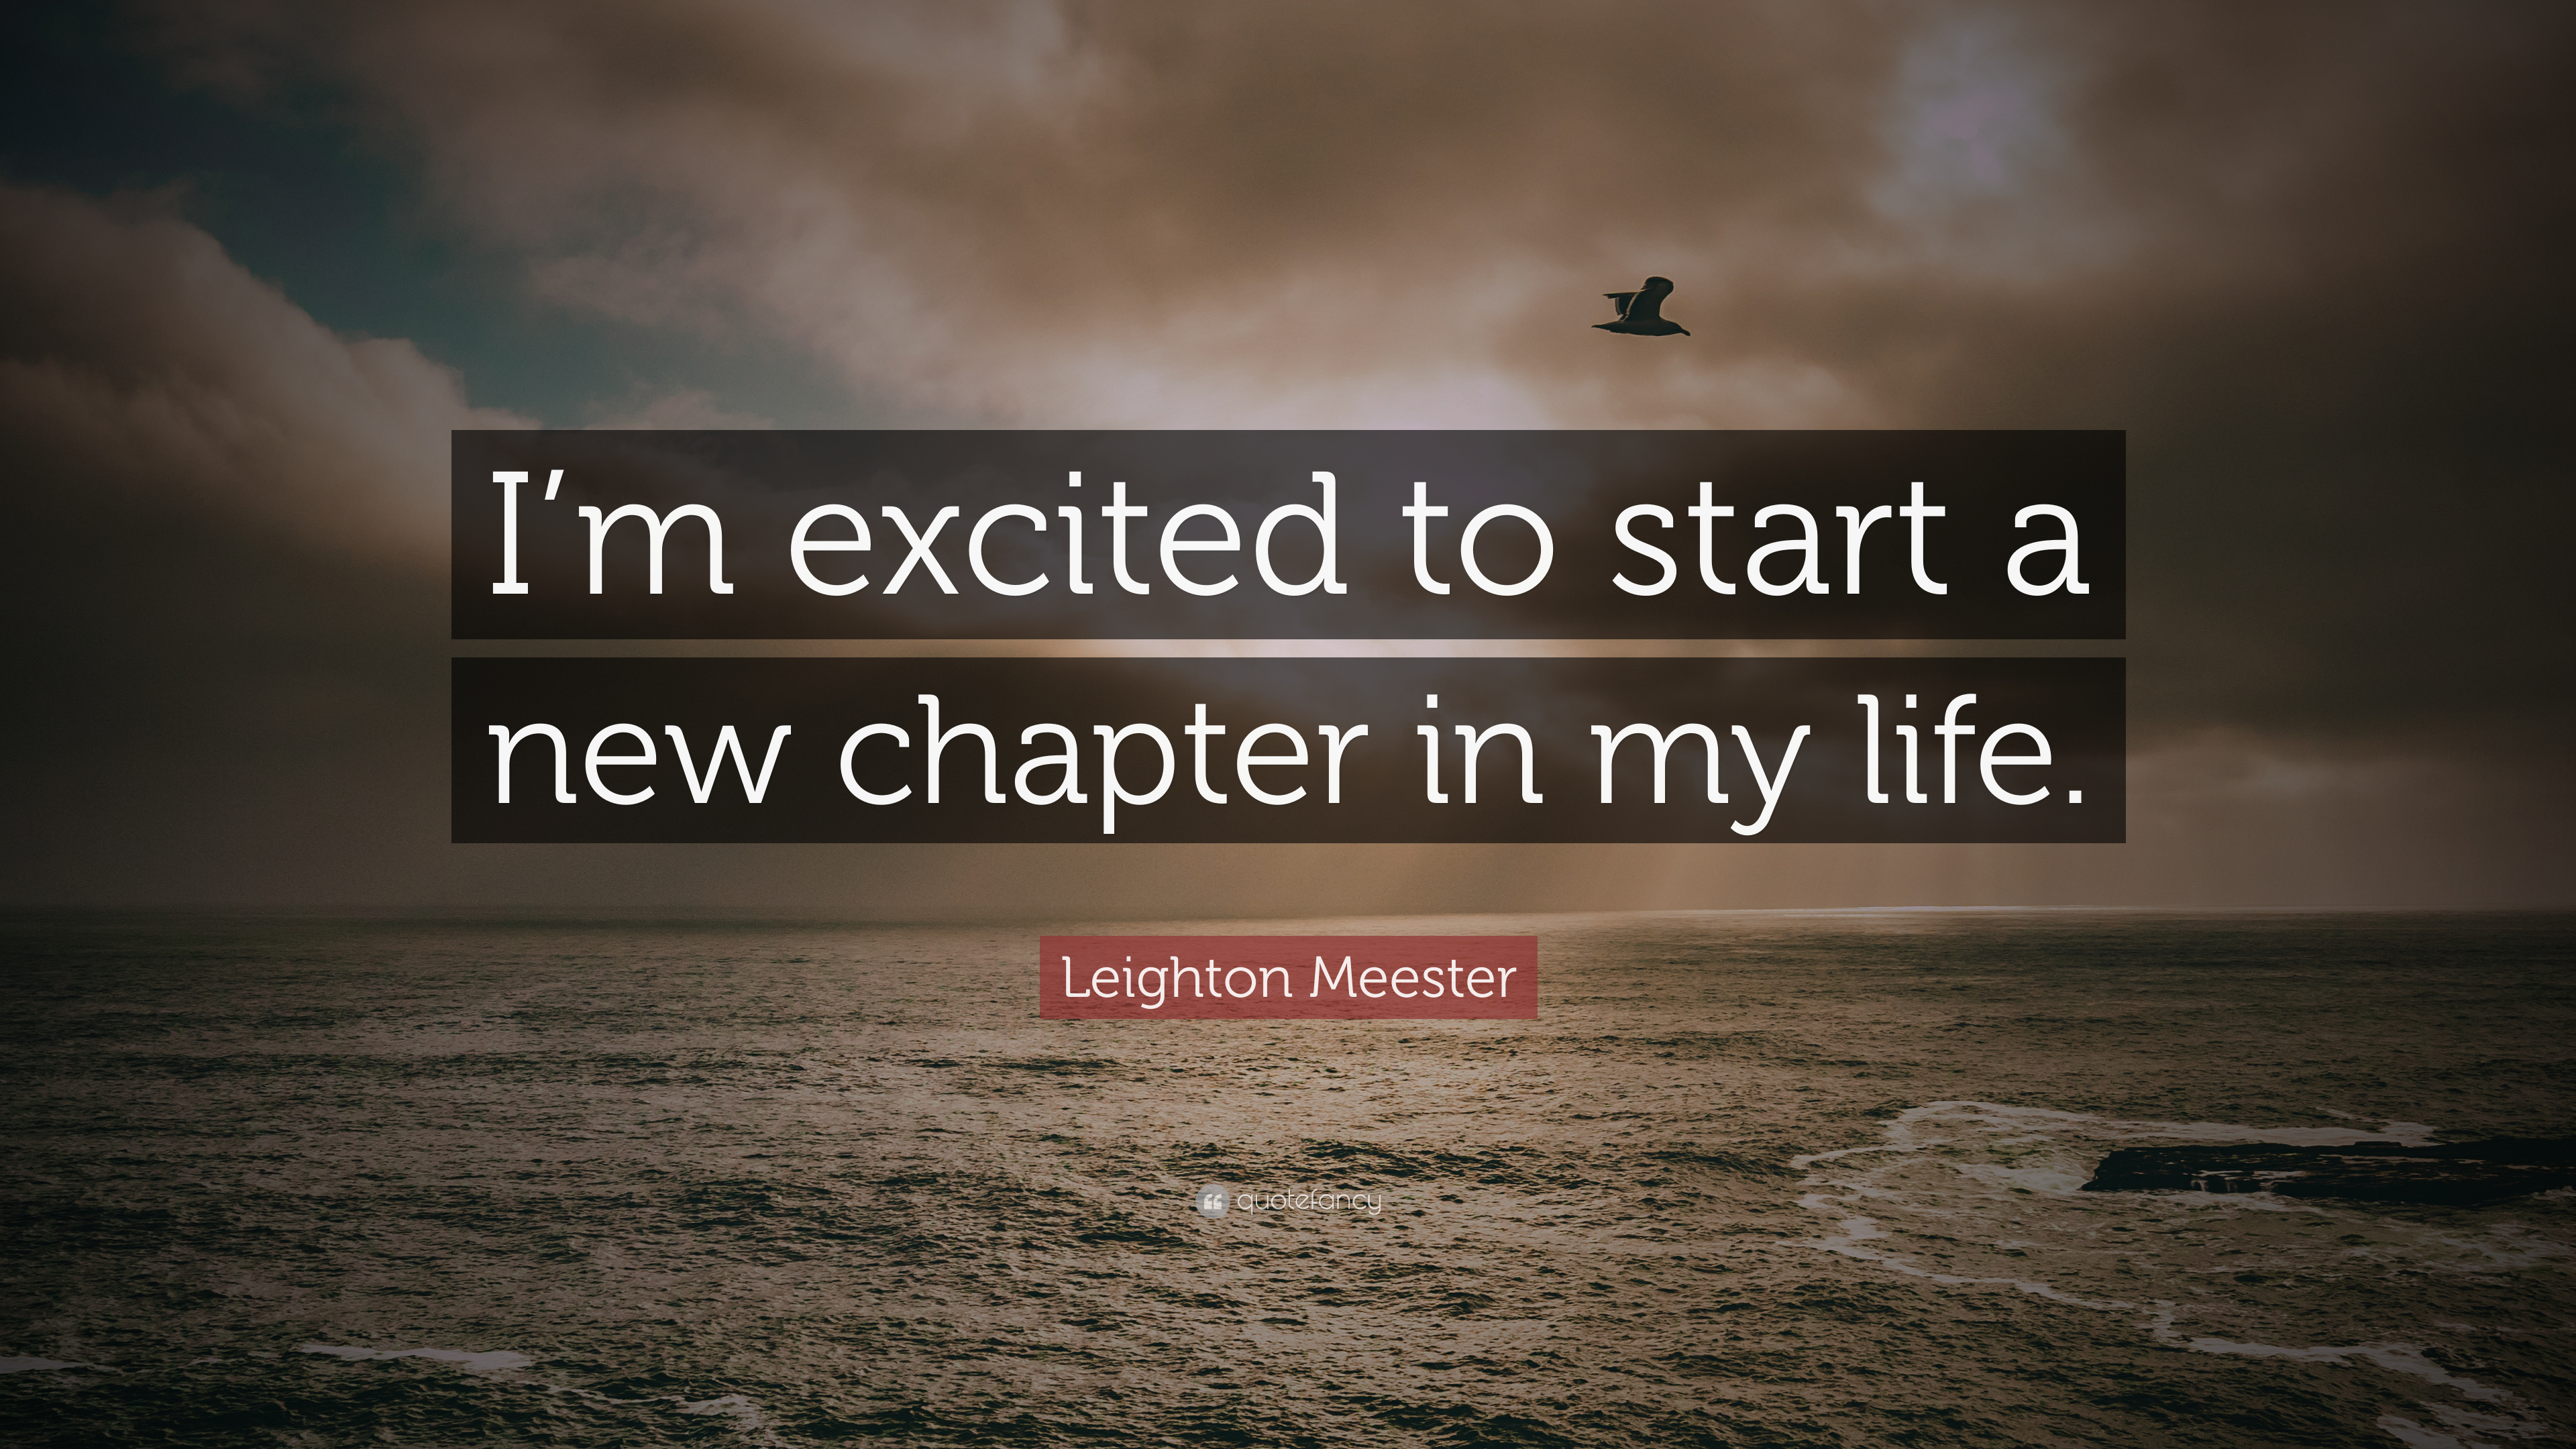 Leighton Meester Quote: Im excited to start a new